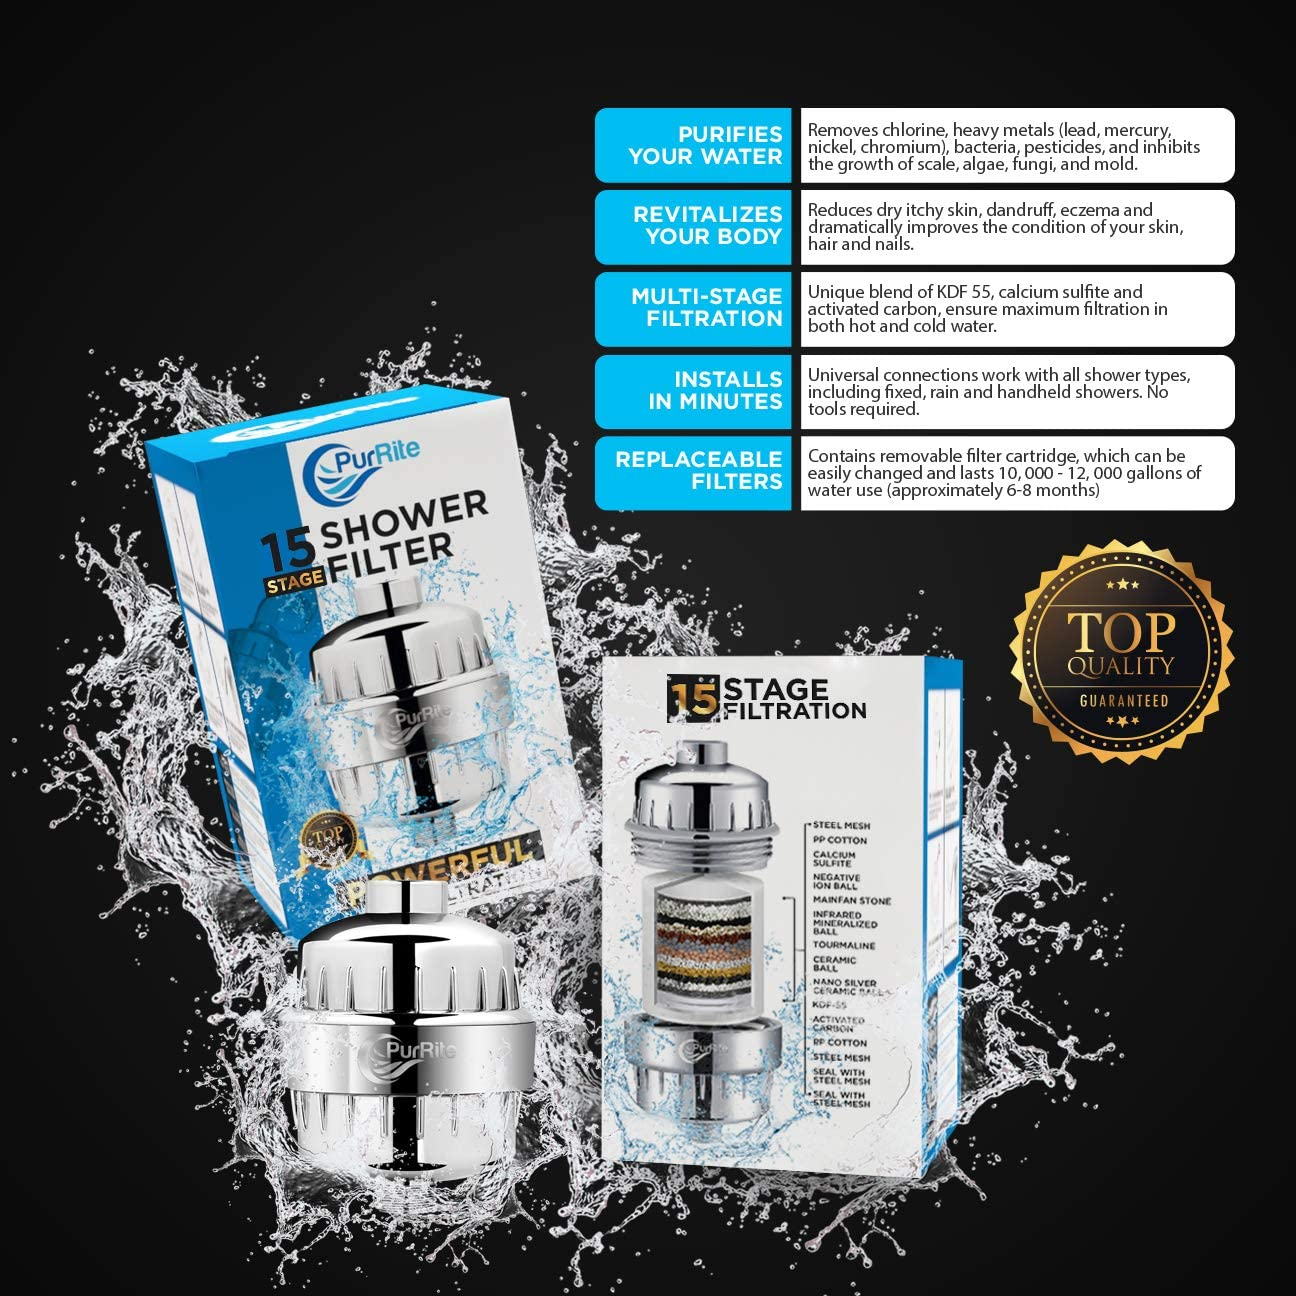 PurRite Shower Filter Water Softener featured features